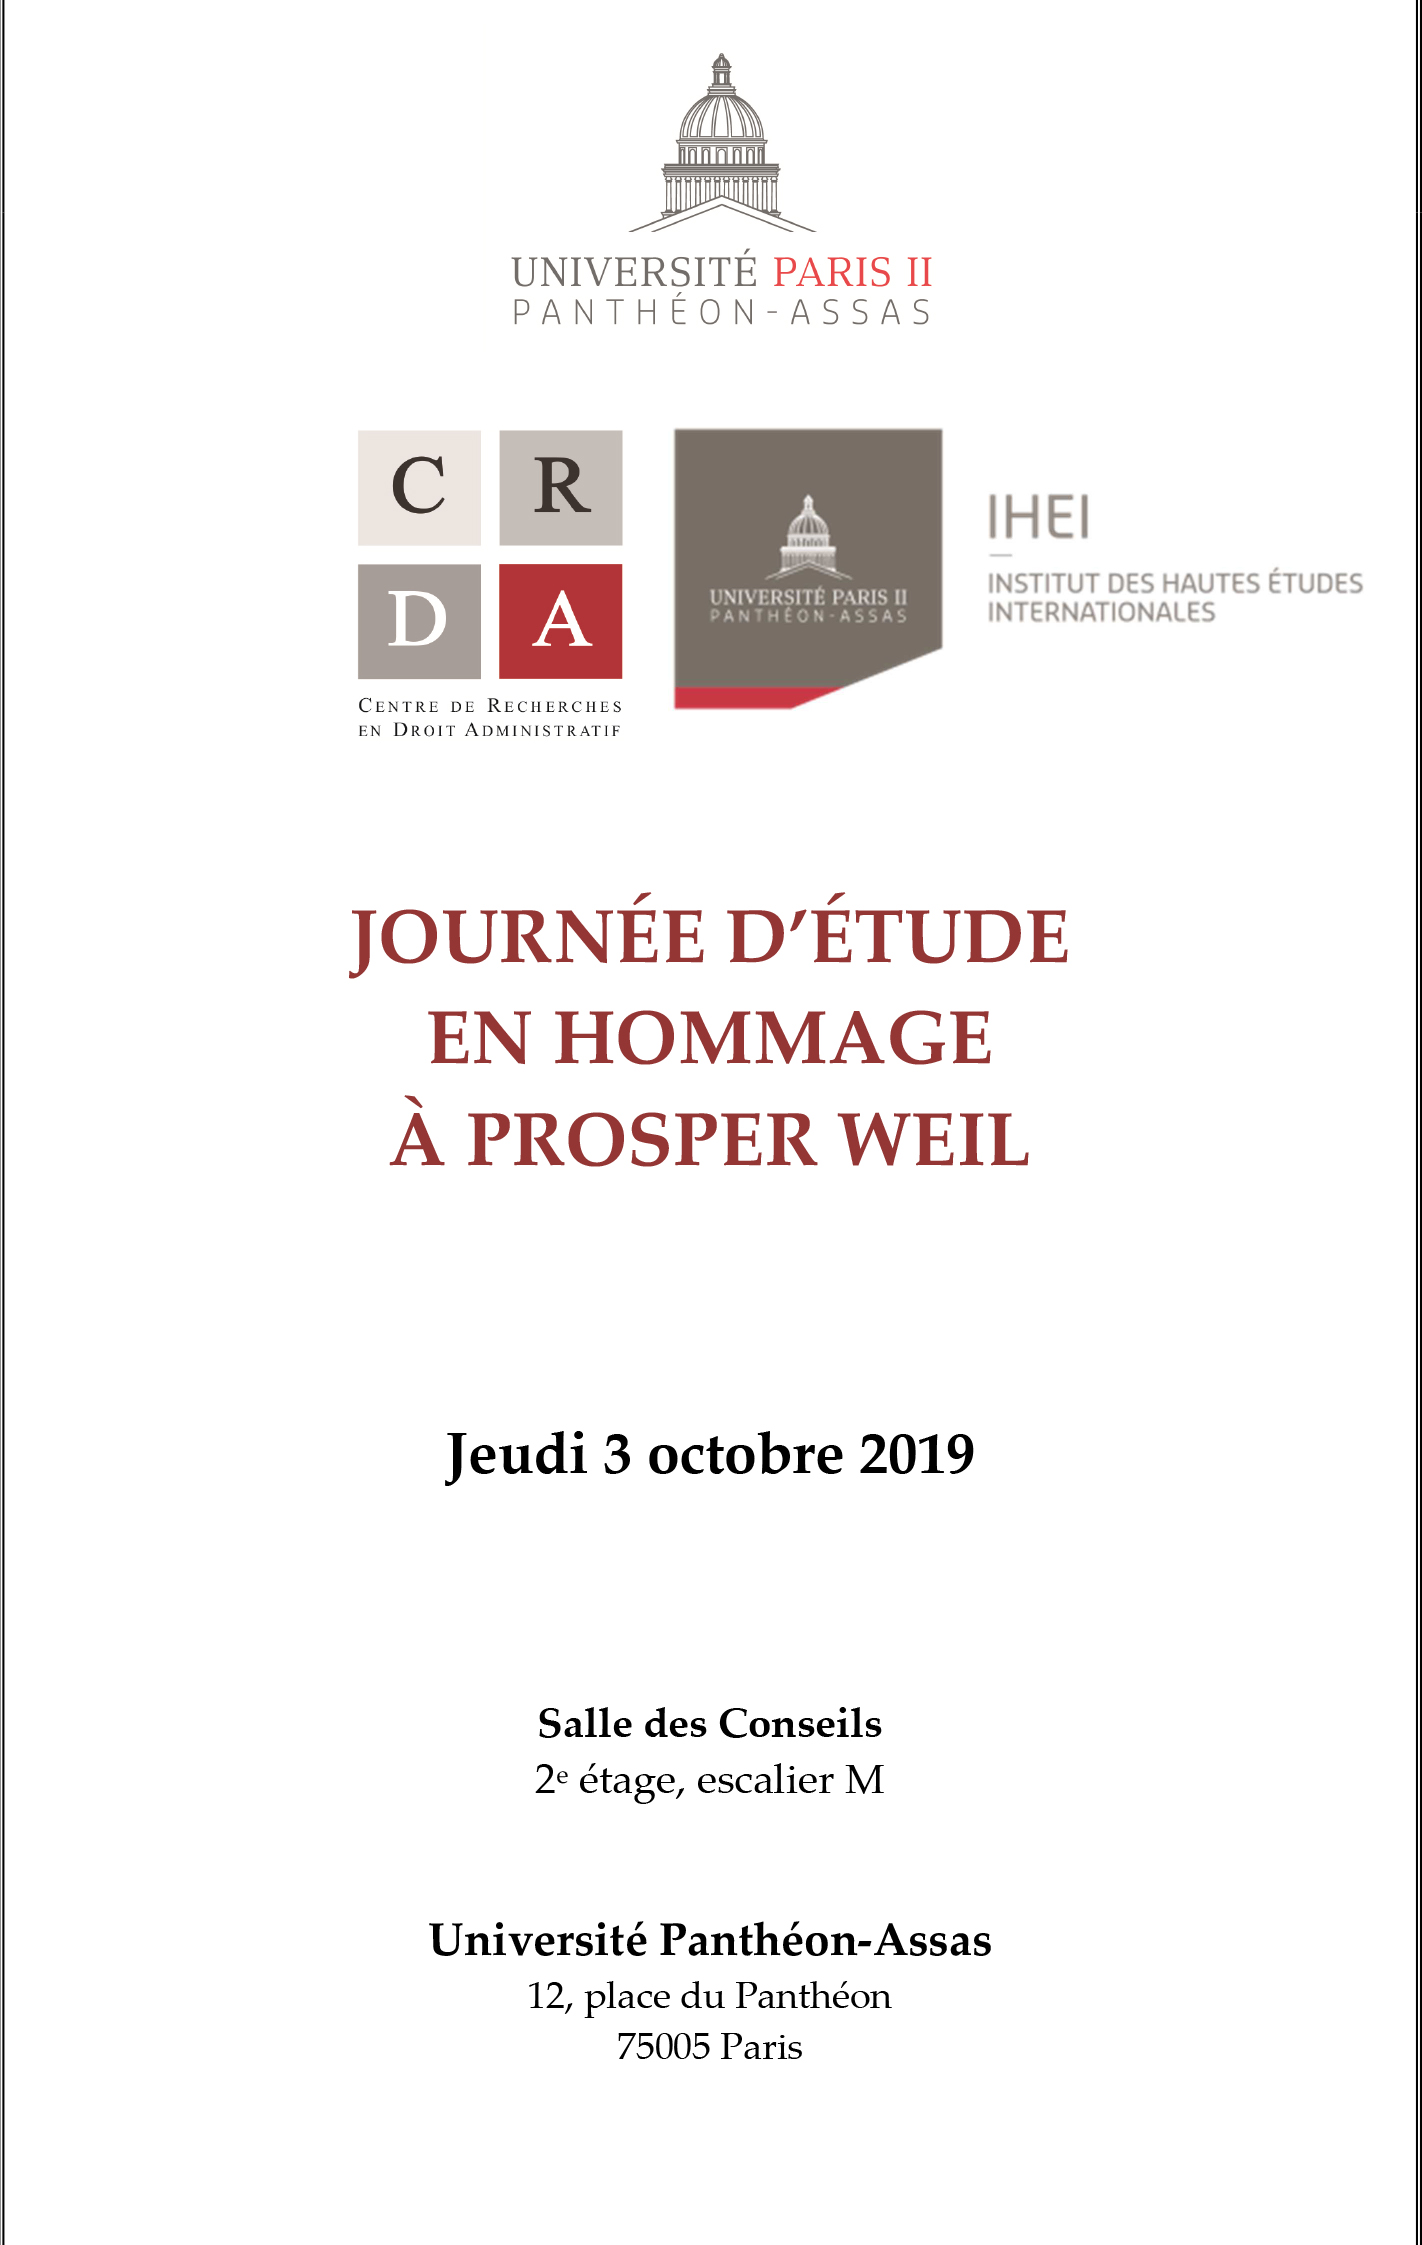 programme_journee_dhommage